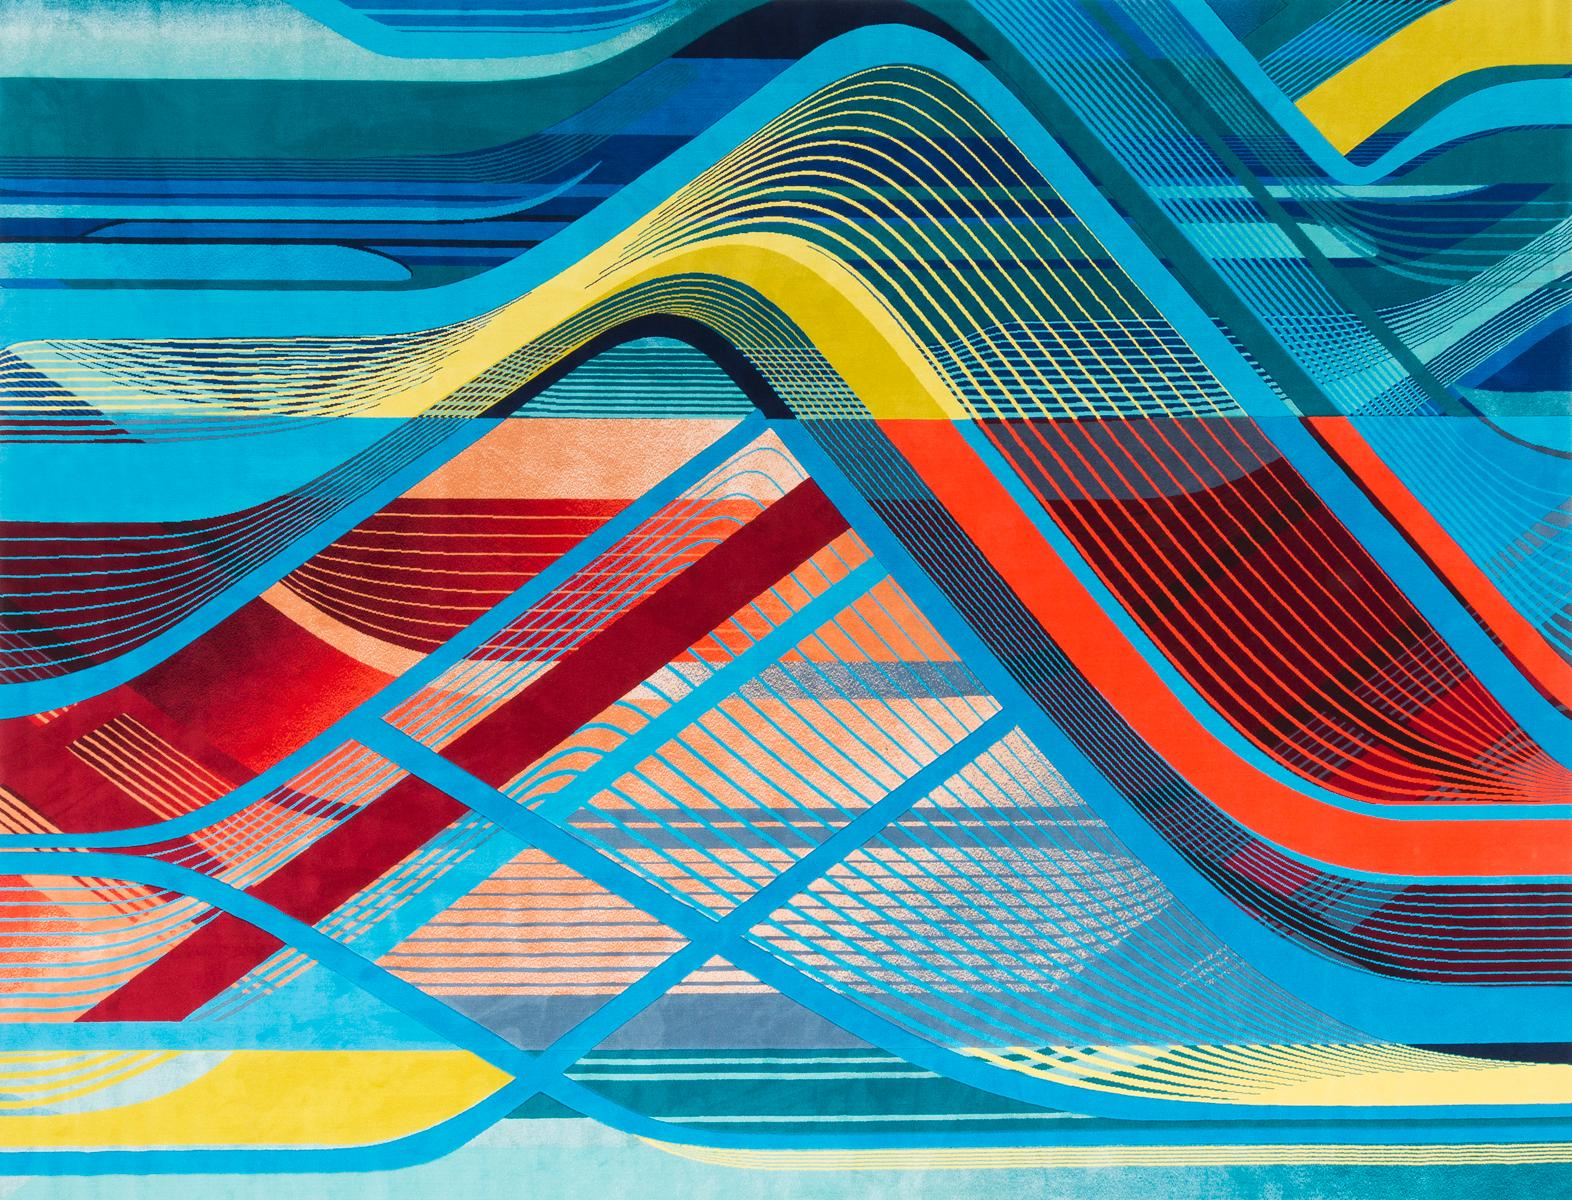 The carpets capture Hadid's notable use of layering and interweaving as well as her use of light and shadow